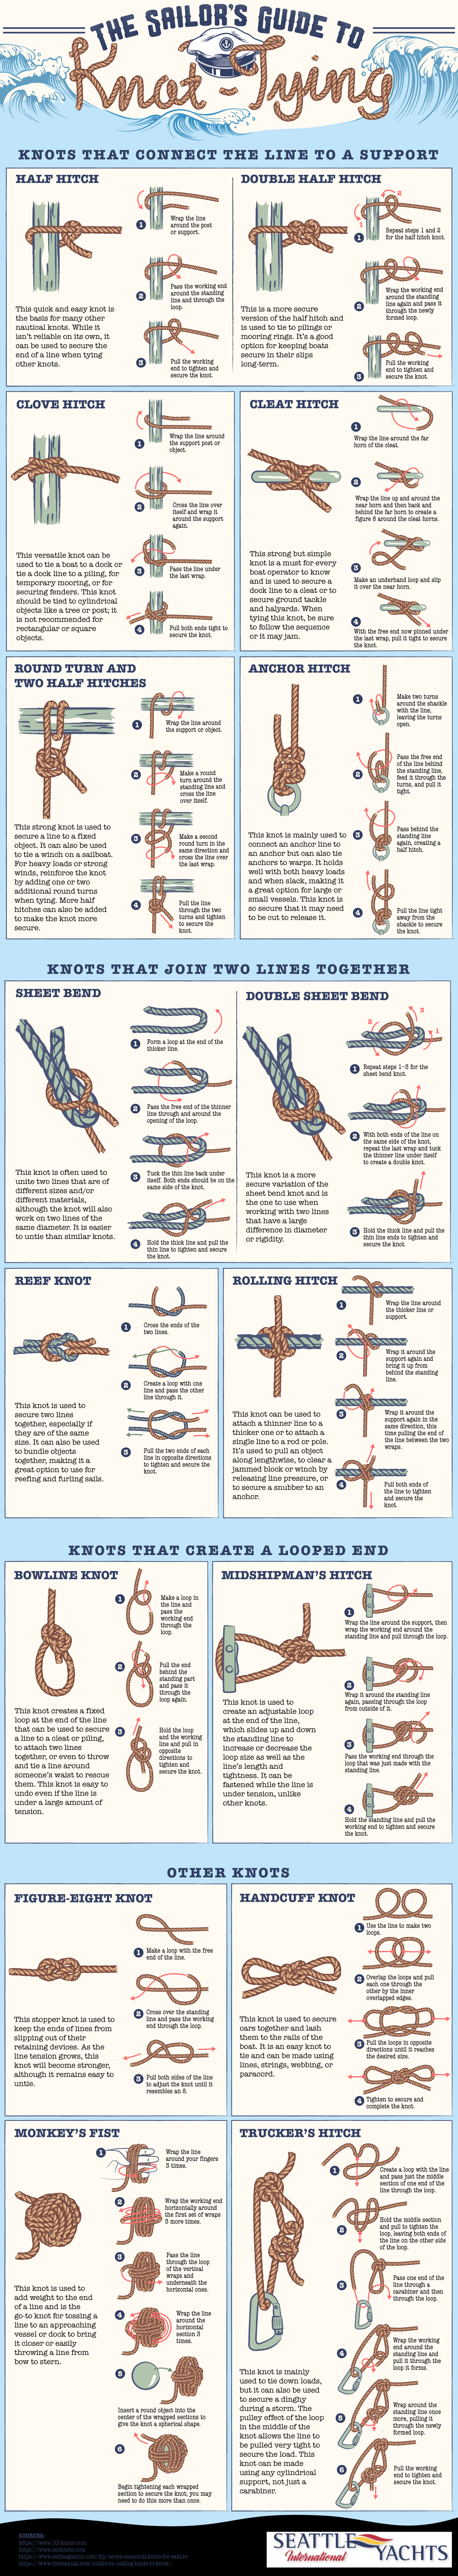 The Sailor's Guide to Knot-Tying - Seattle Yachts Sailboats - Infographic